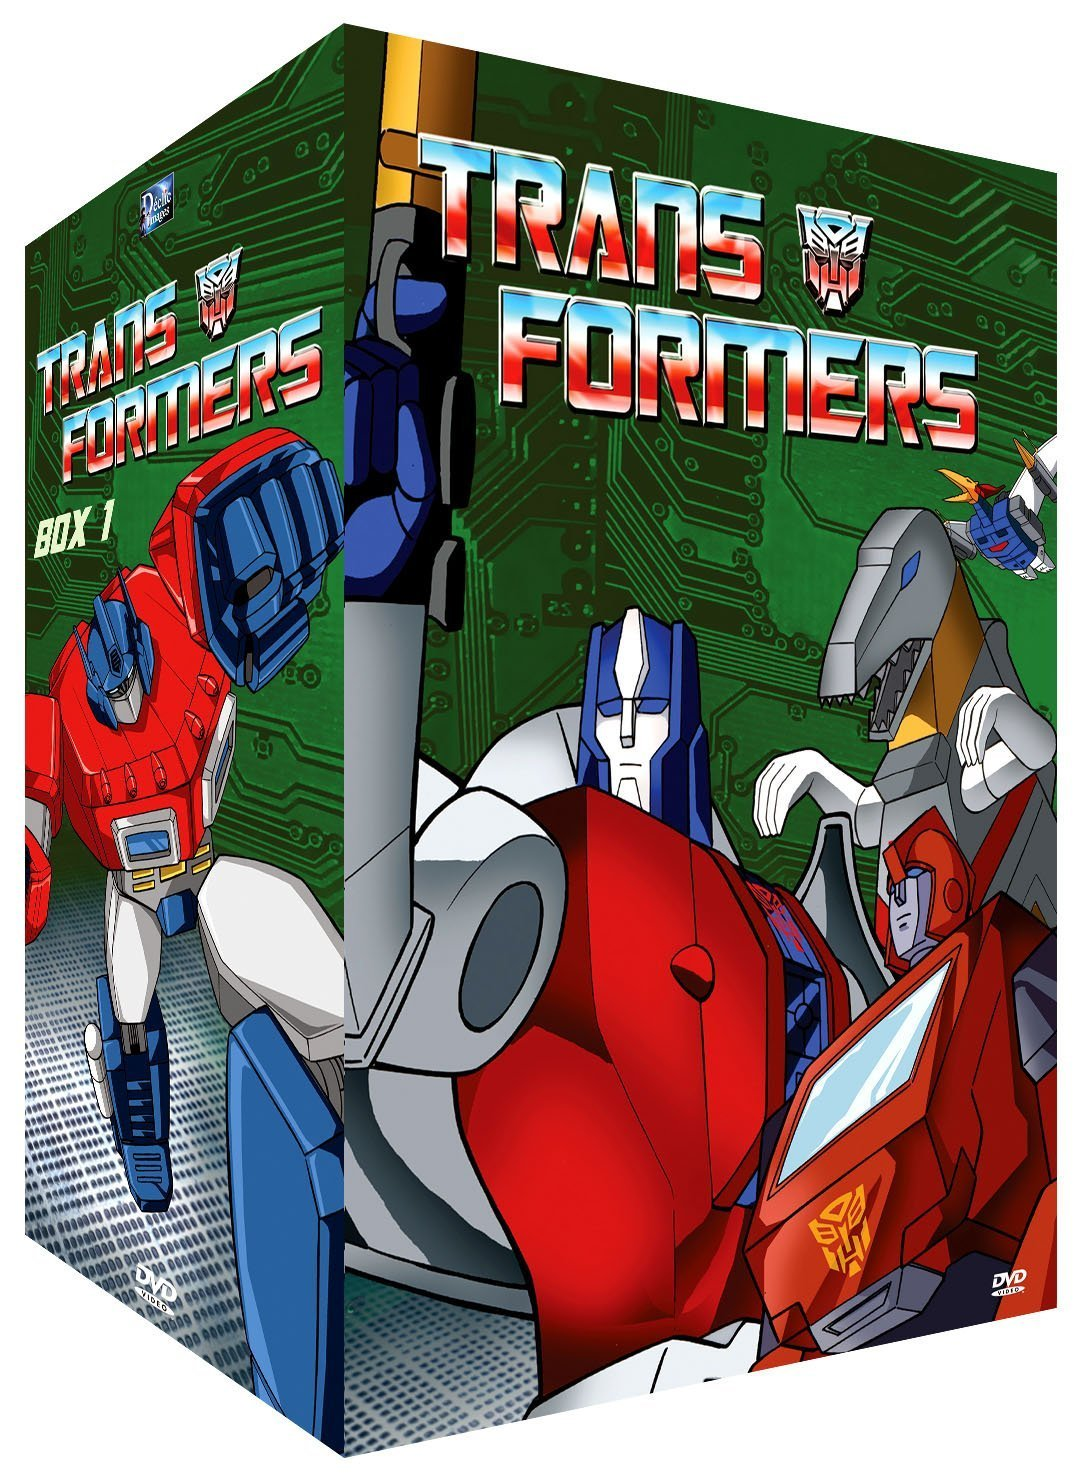 Coffret DVD de Les Transformers (G1) de France par Déclic Images et UFG Junior 81sQEy2dKnS